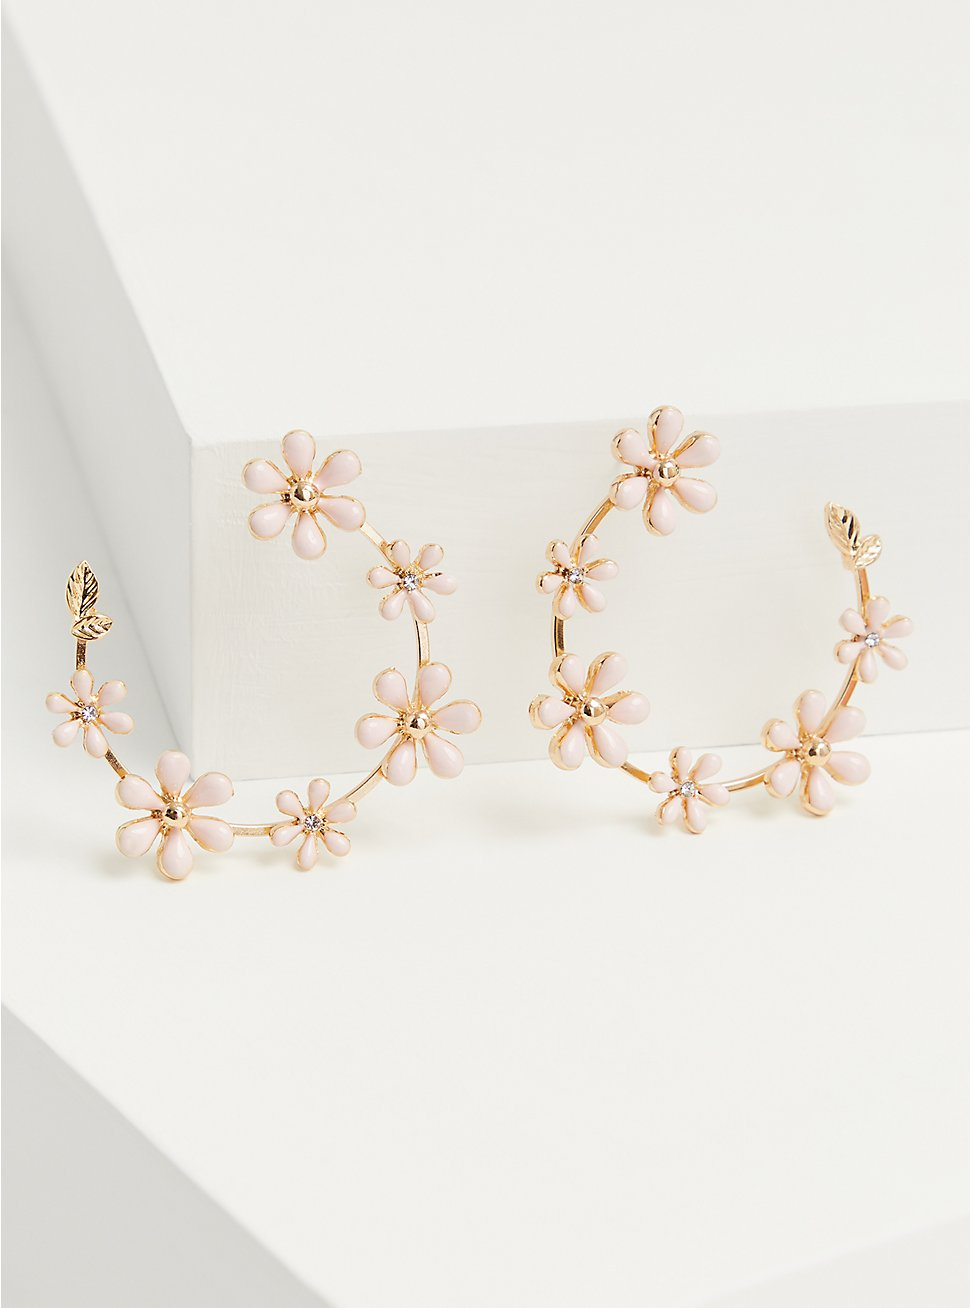 Plus Size Gold-Tone & Blush Floral Hoop Earrings, , hi-res